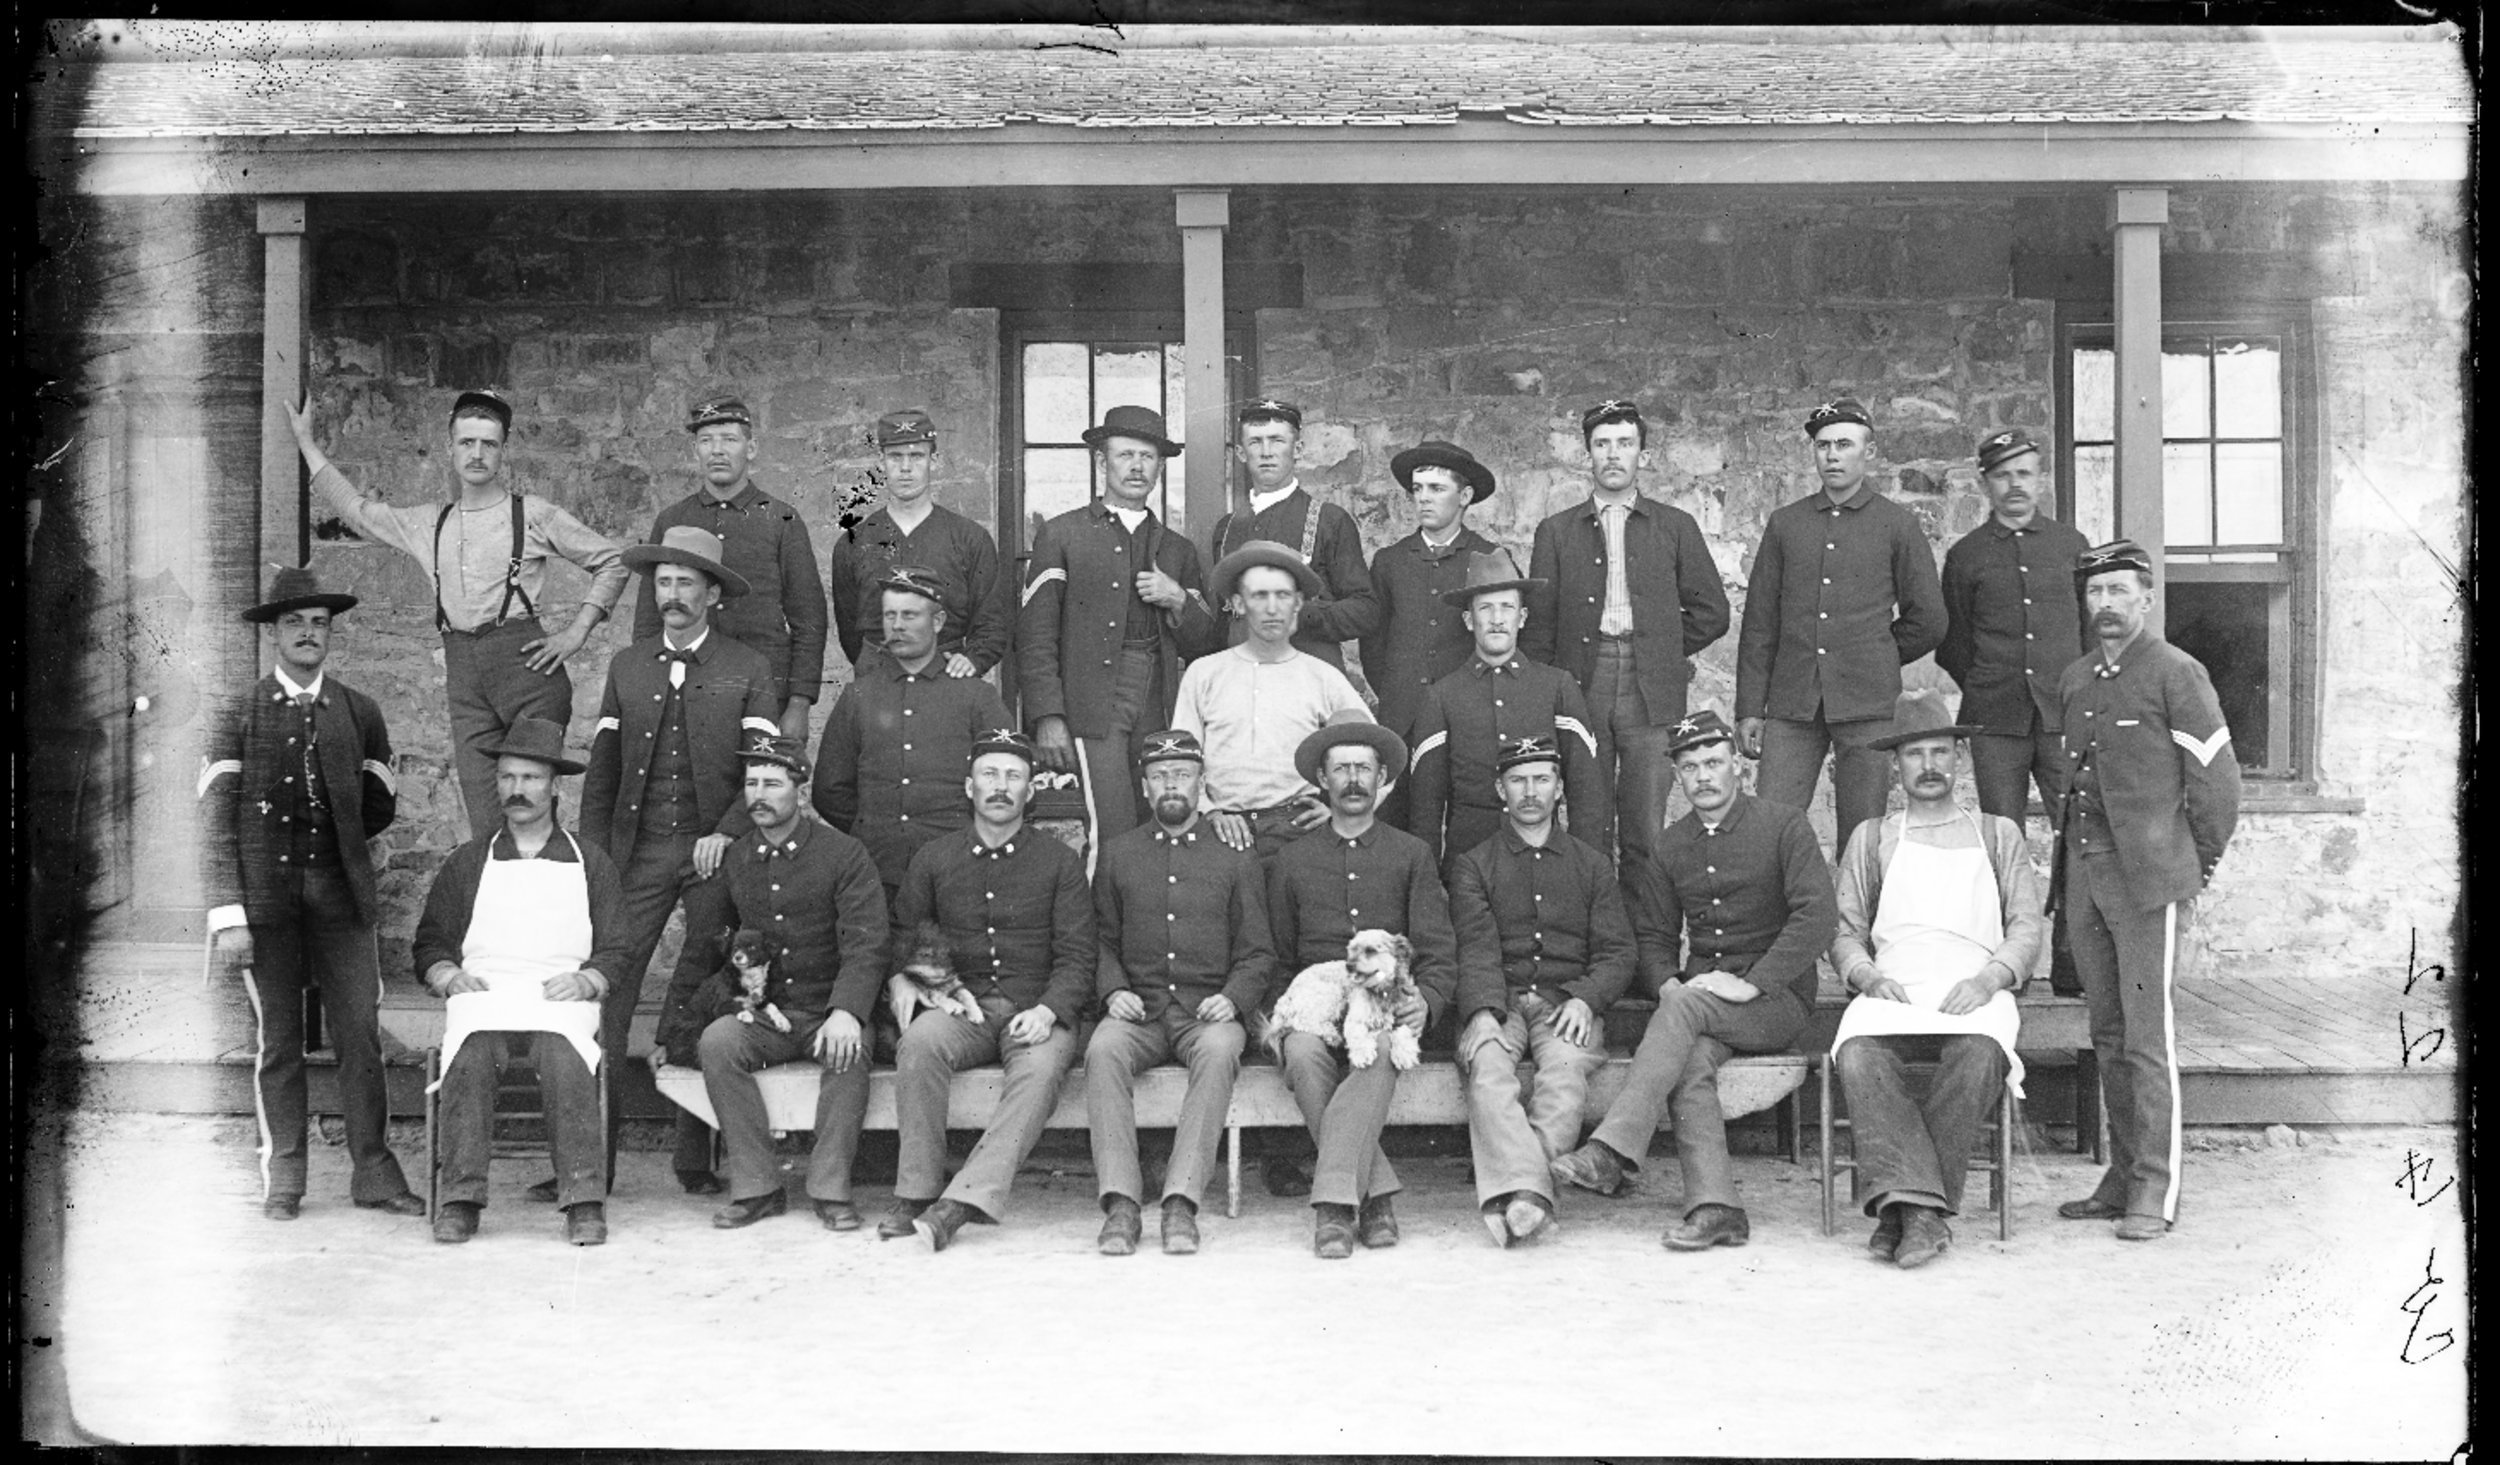 Fort Lyon and Fort Union - Company F, 22nd Infantry, Fort Lyon, Colorado. Soldiers are pictured in front of a building and many of them are holding dogs. Neg #8